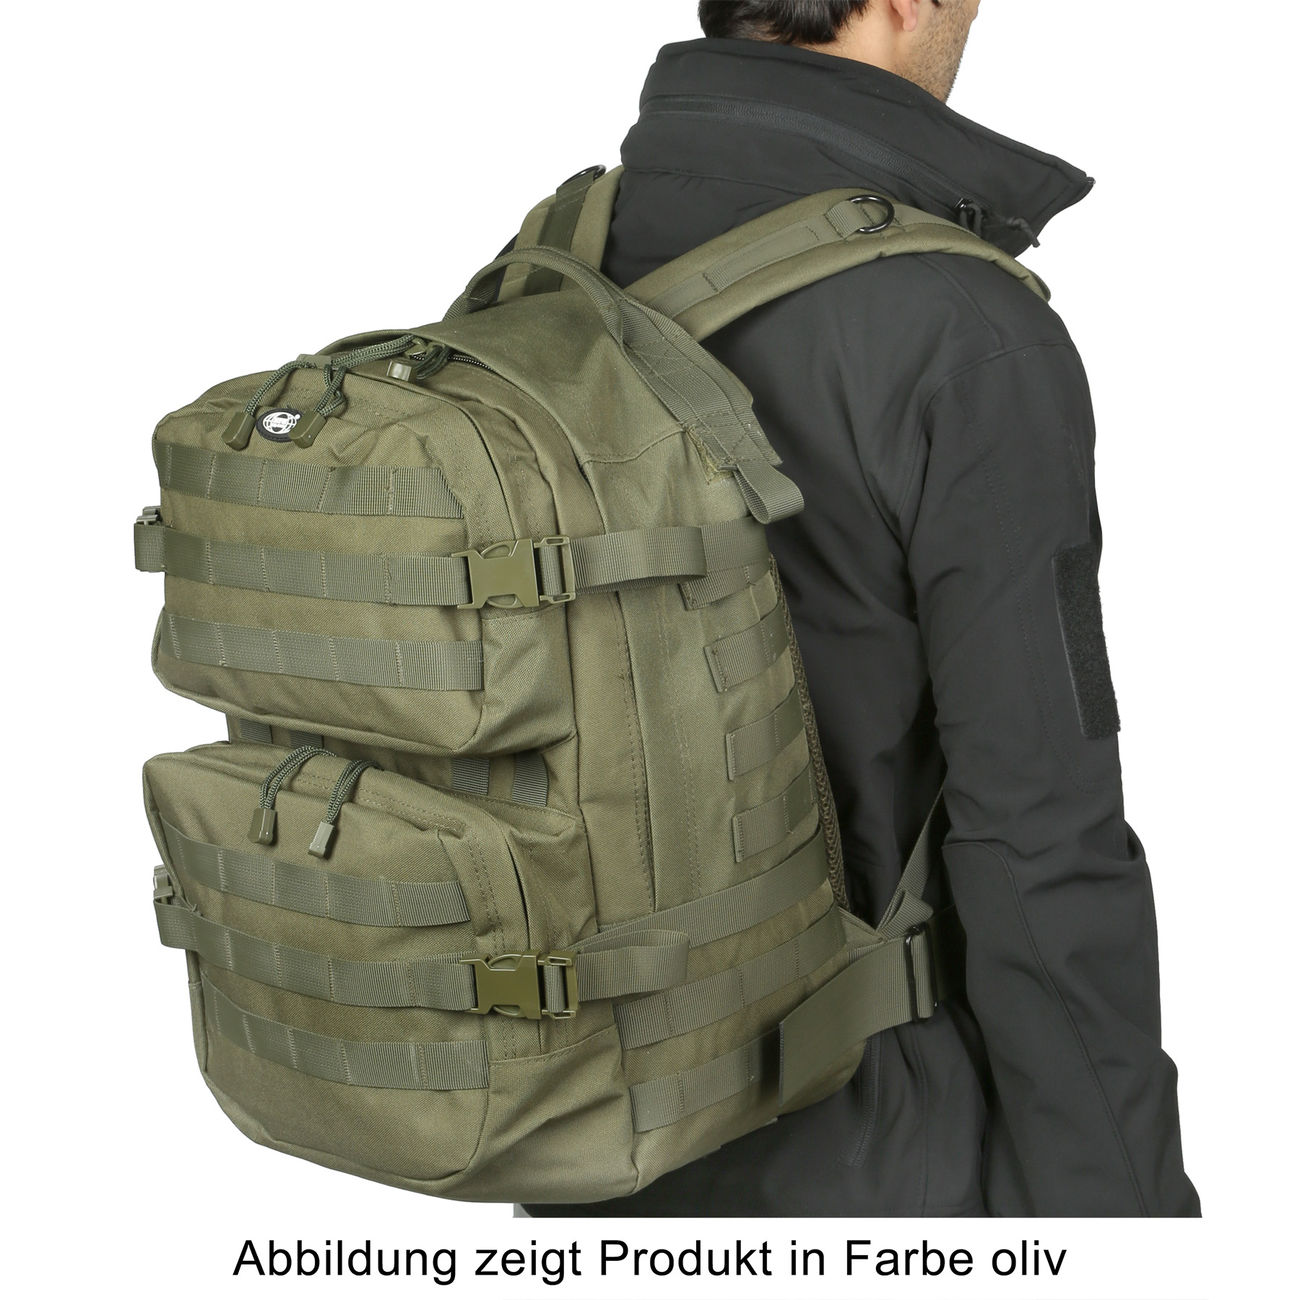 MFH Rucksack US Assault II vegetato desert 5